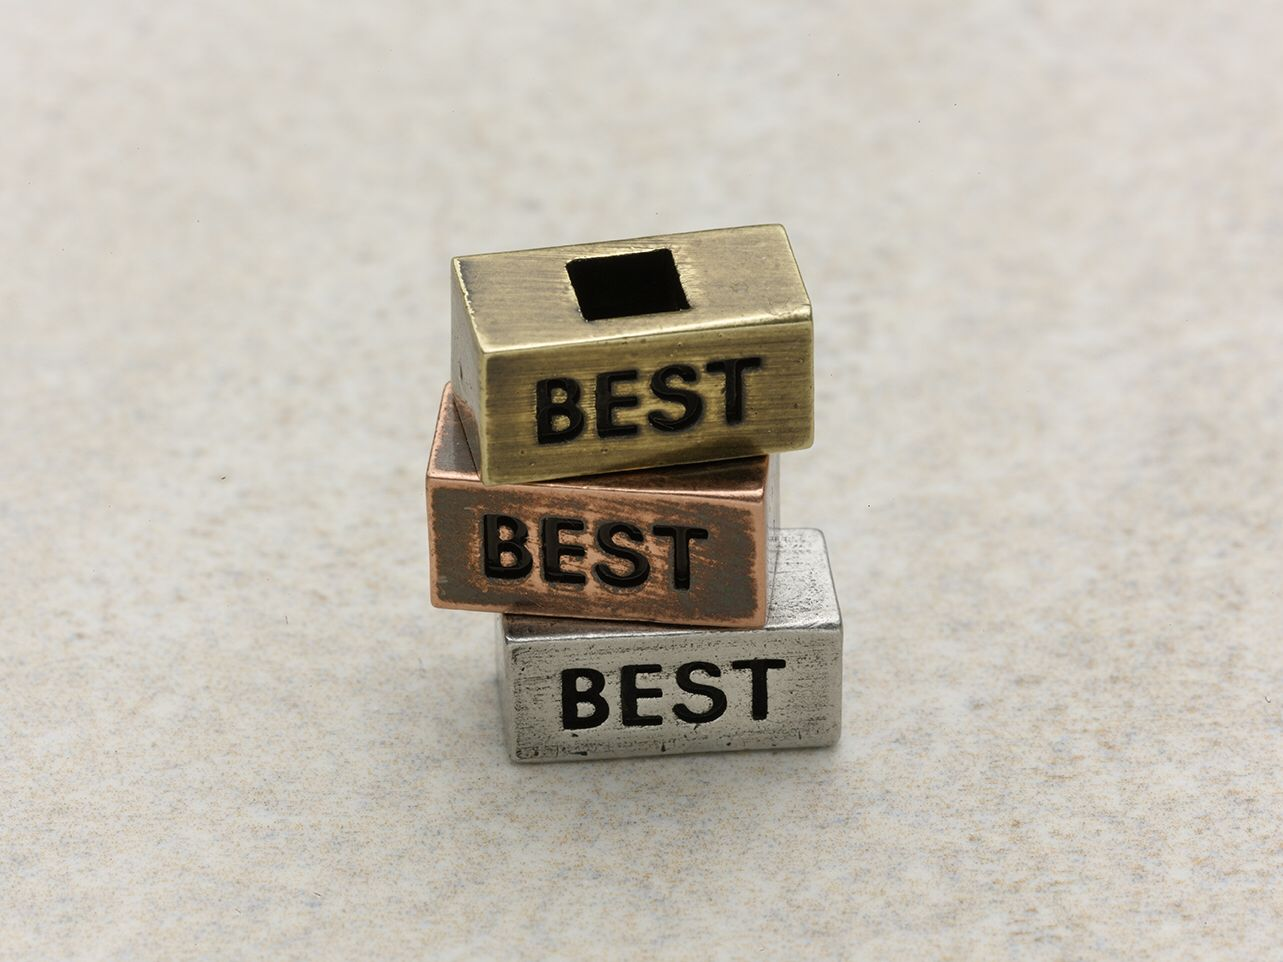 What makes something the best? For us, best is what you make of it. The 212 west best necklace pendant is creative and expressive, whether Love Is Best or the Best Lake Run or Midwest Is Best, you decide what your best means.